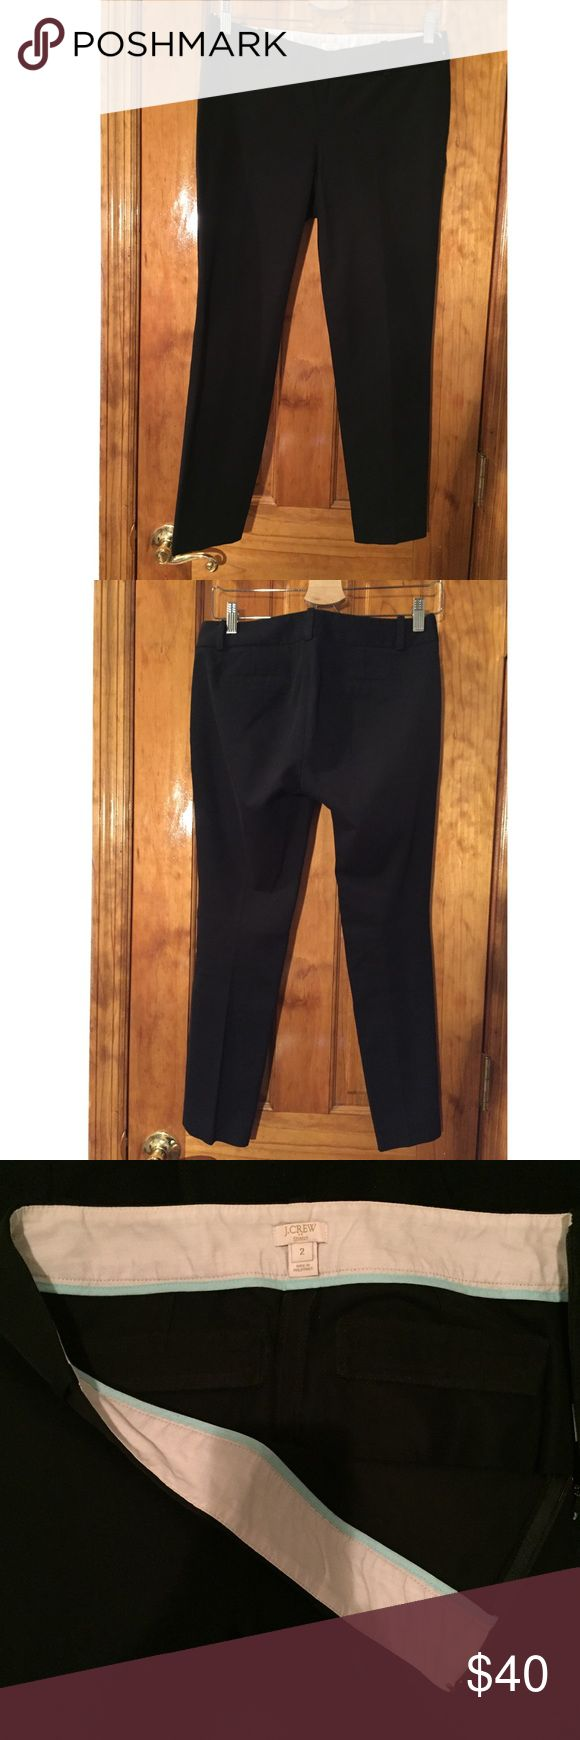 """J. Crew Black Minnie Stretch Pants 2 LIKE NEW J. Crew Black Minnie Stretch Pants // Size:2 // Waist:15"""" Inseam:25"""" // Condition: GREAT // Color: Black // Perfect for literally every occasion, work, weekend, party, art opening, networking, sunday brunch, monday meeting, happy hour...I mean. Best pair of pants you'll ever find anywhere! 15% off on bundles. I ship same-day from pet/smoke-free home. Buy with confidence. I am a top seller with close to 400 5-star ratings and A LOT of love notes…"""